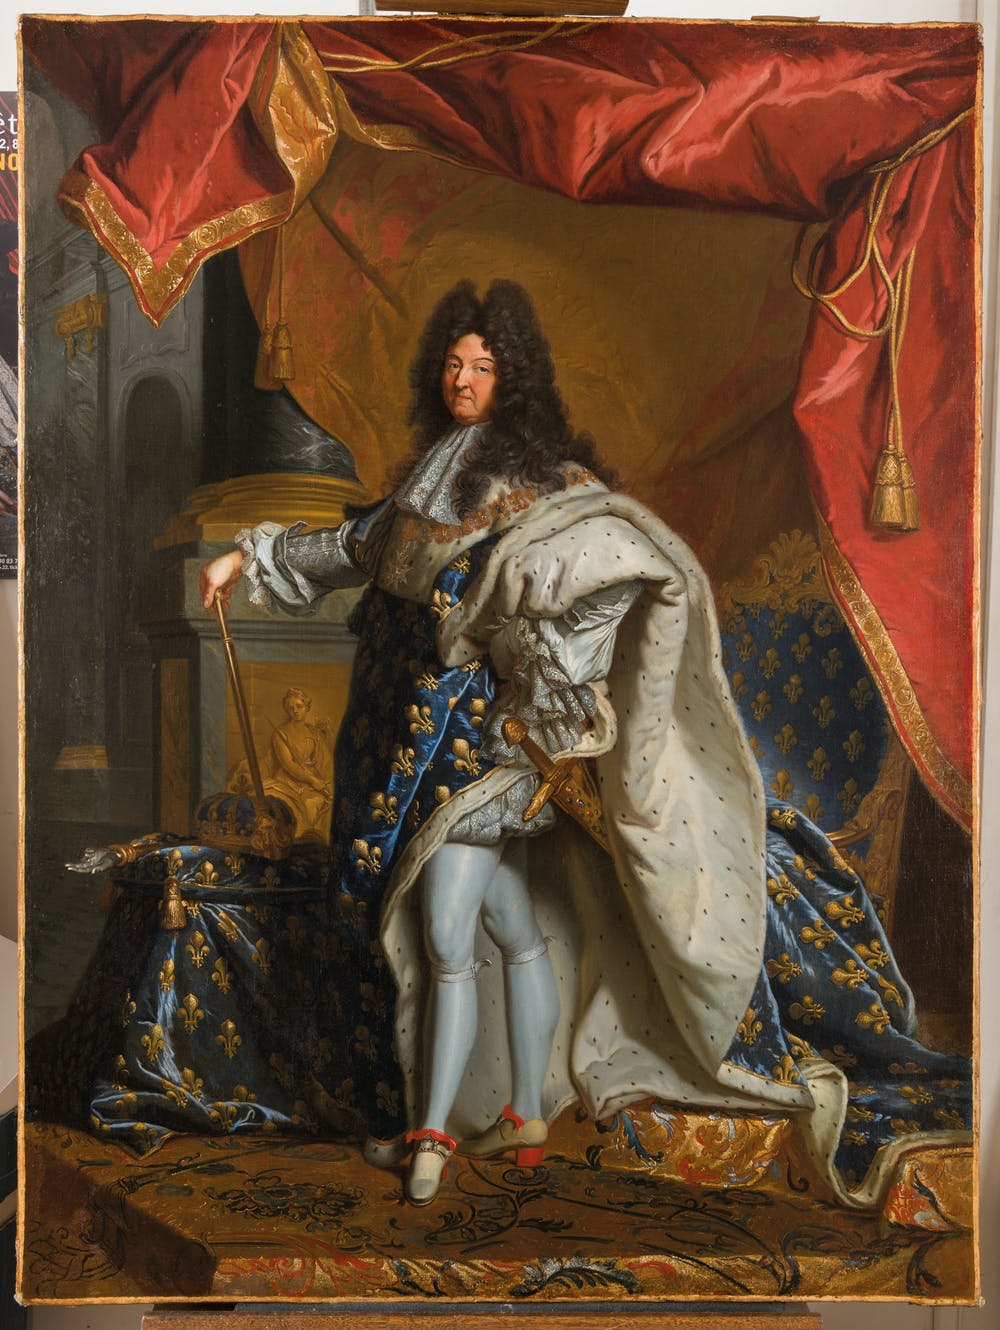 friday essay what is it about versailles  louis xiv 1701 12 studio of hyacinthe rigaud © chateau de versailles dist rmn grand palais christophe fouin